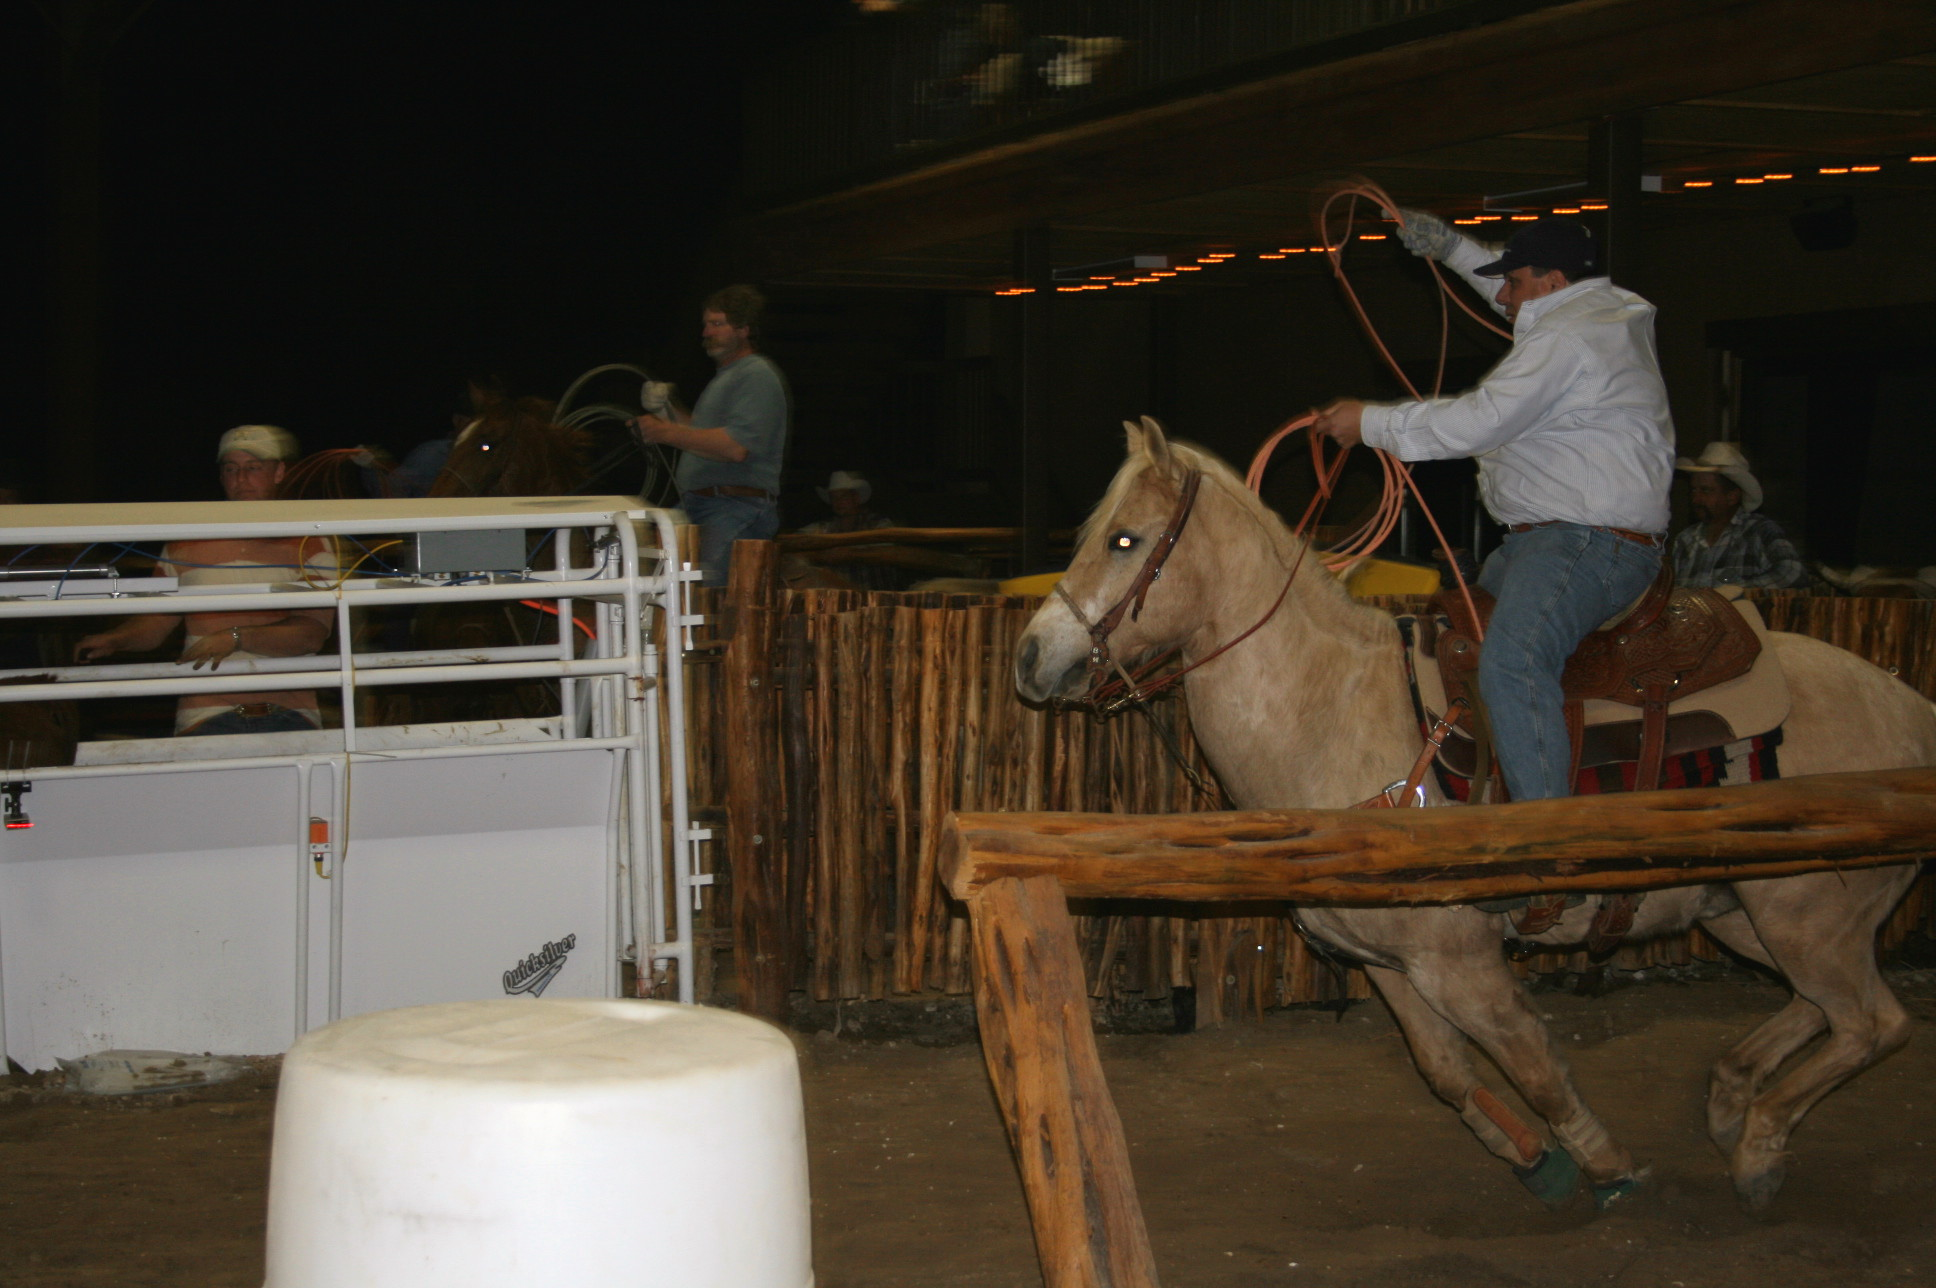 http://store.zcubes.com/C49CEADC5B984C1EAA8AC4996A38595D/Uploaded/Allcat%20Team%20Roping_2006.jpg